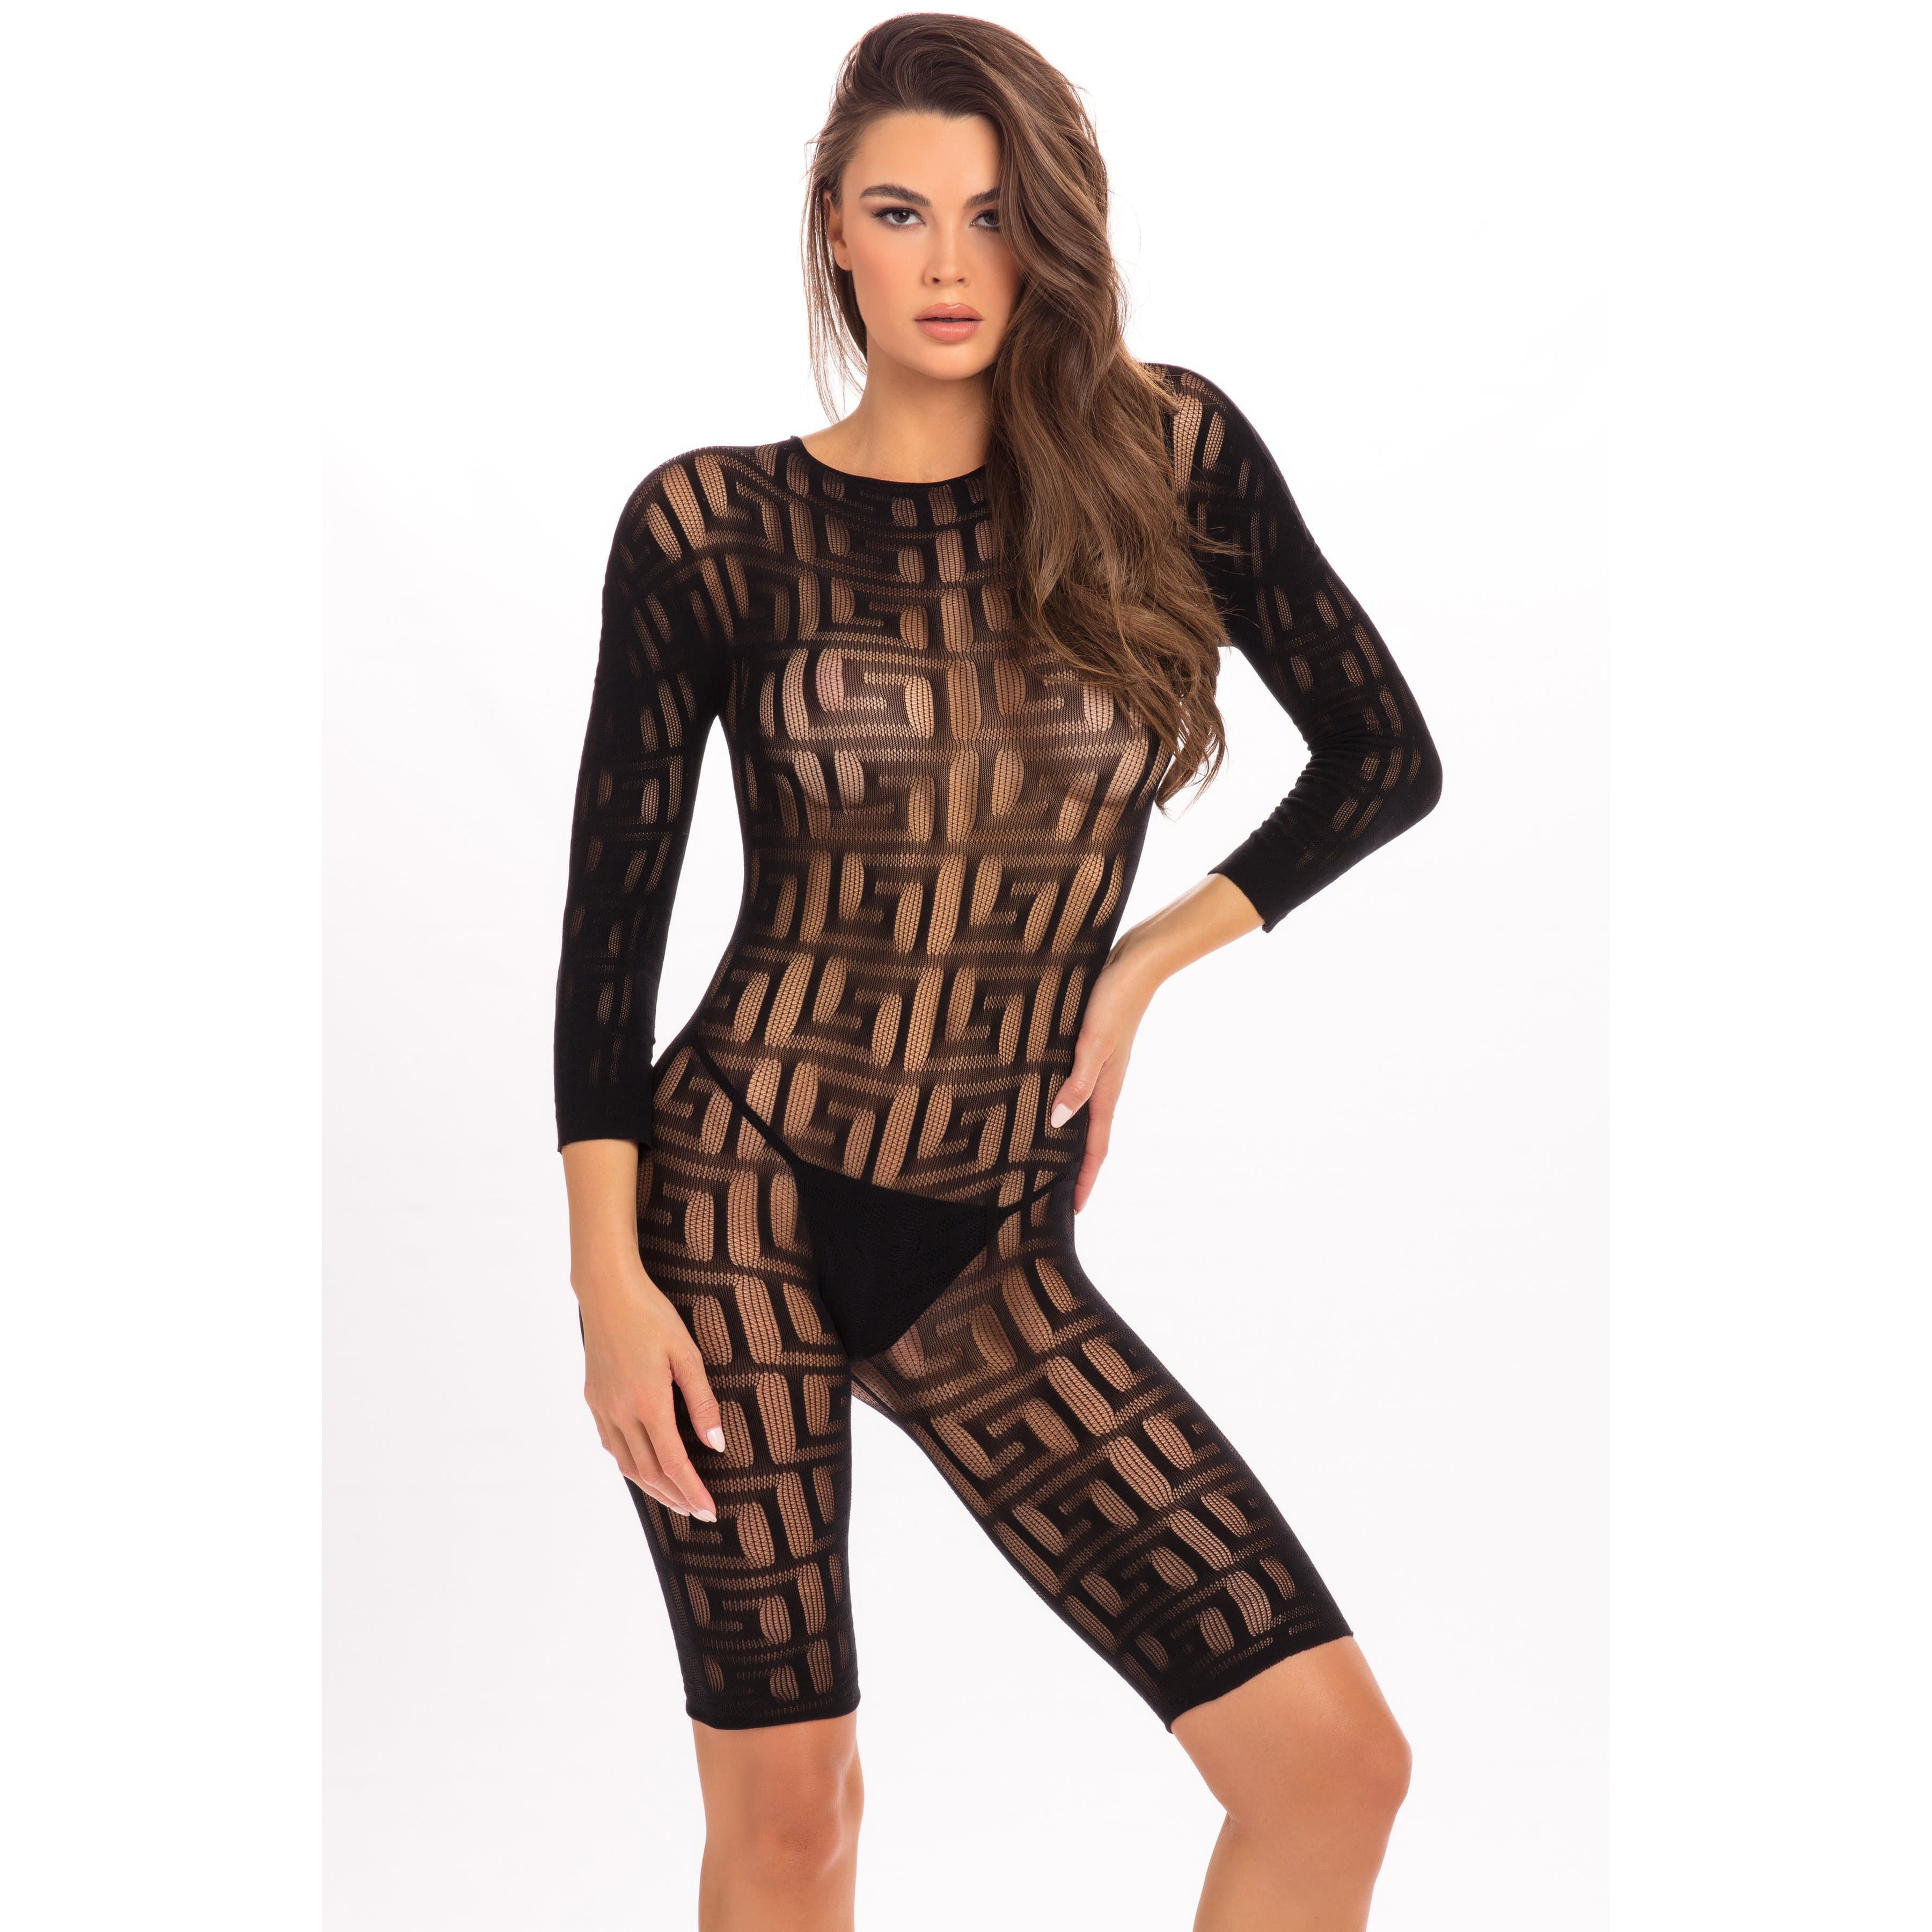 Rene Rofe - Exotic Crotchless Bodystocking Costume M/L (Black) Costumes PleasureHobby